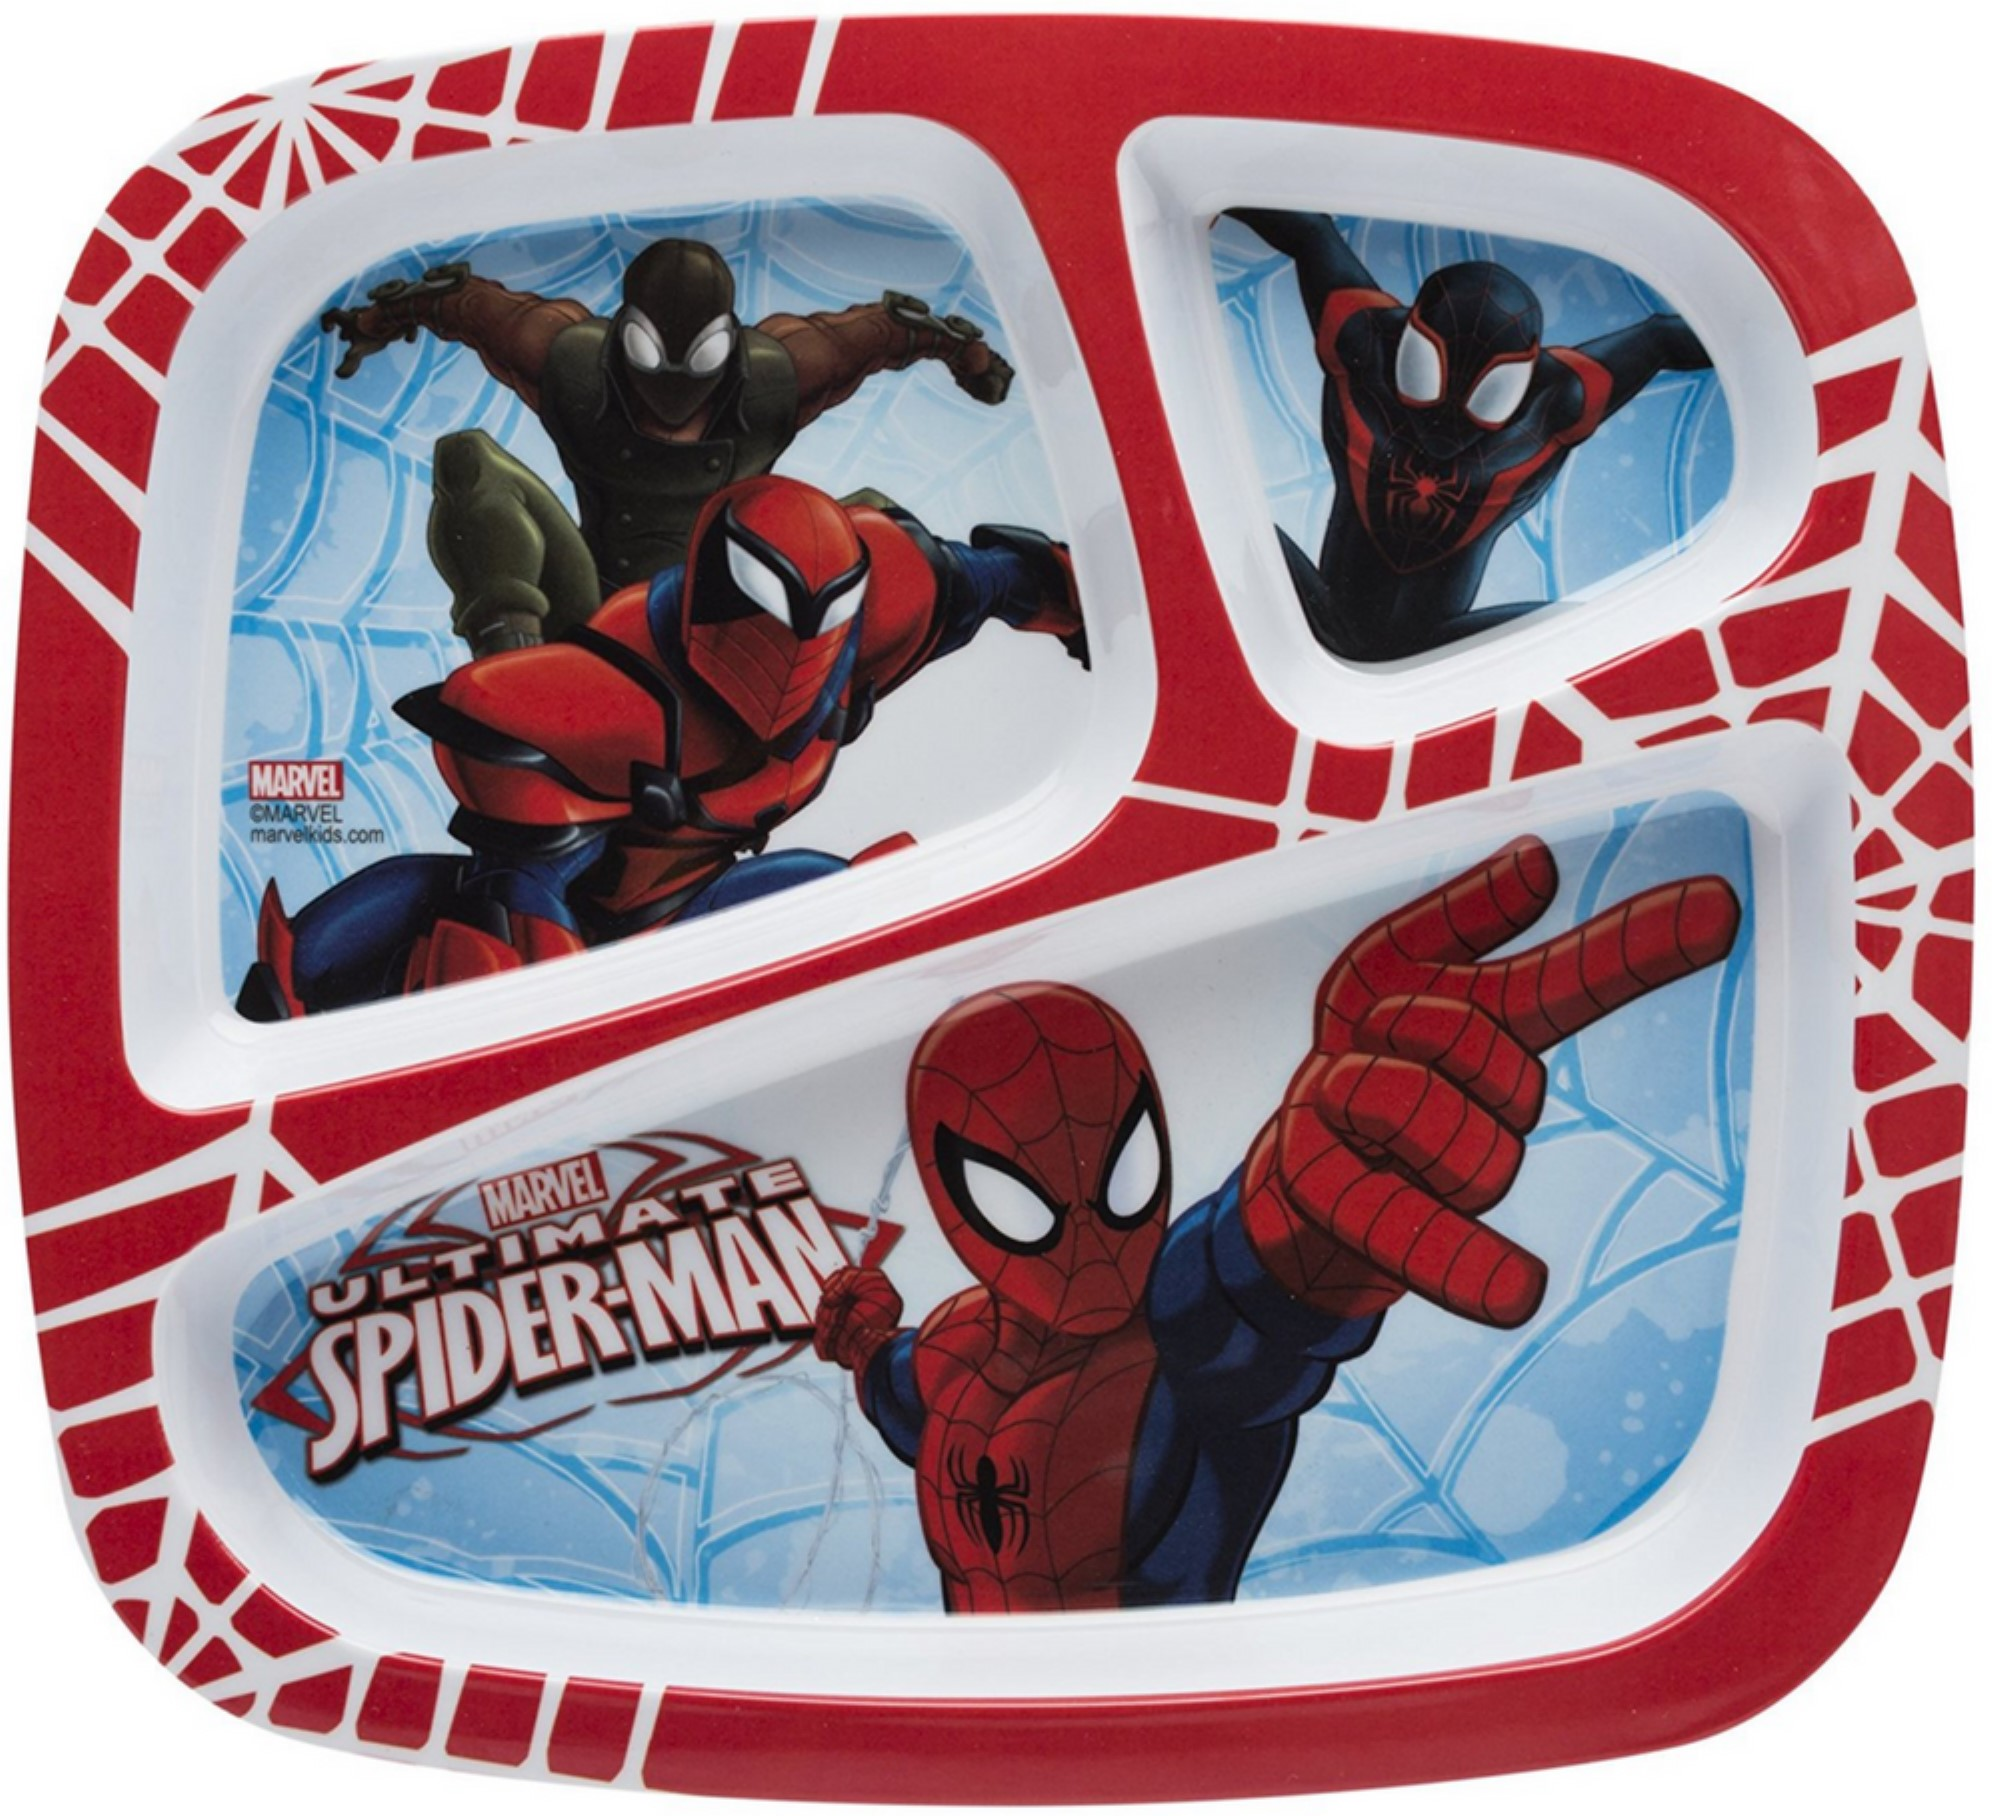 6 Pack - Zak! Designs 3-Section Plate, Ultimate Spiderman 1 ea 707226638979